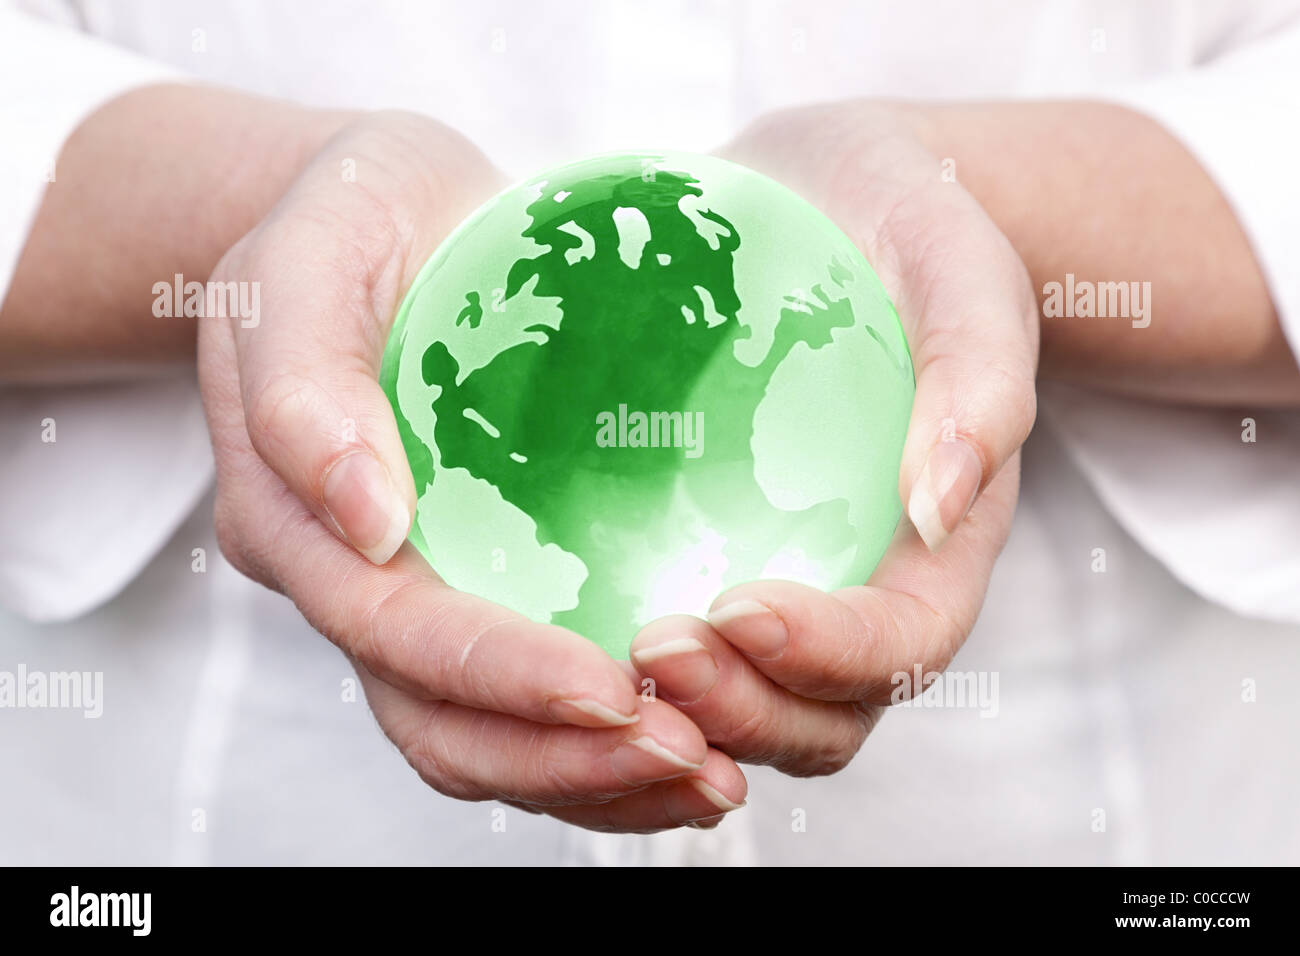 Photo of a woman holding a gree glass globe in her hands, concept image for worldwide and global environment related - Stock Image